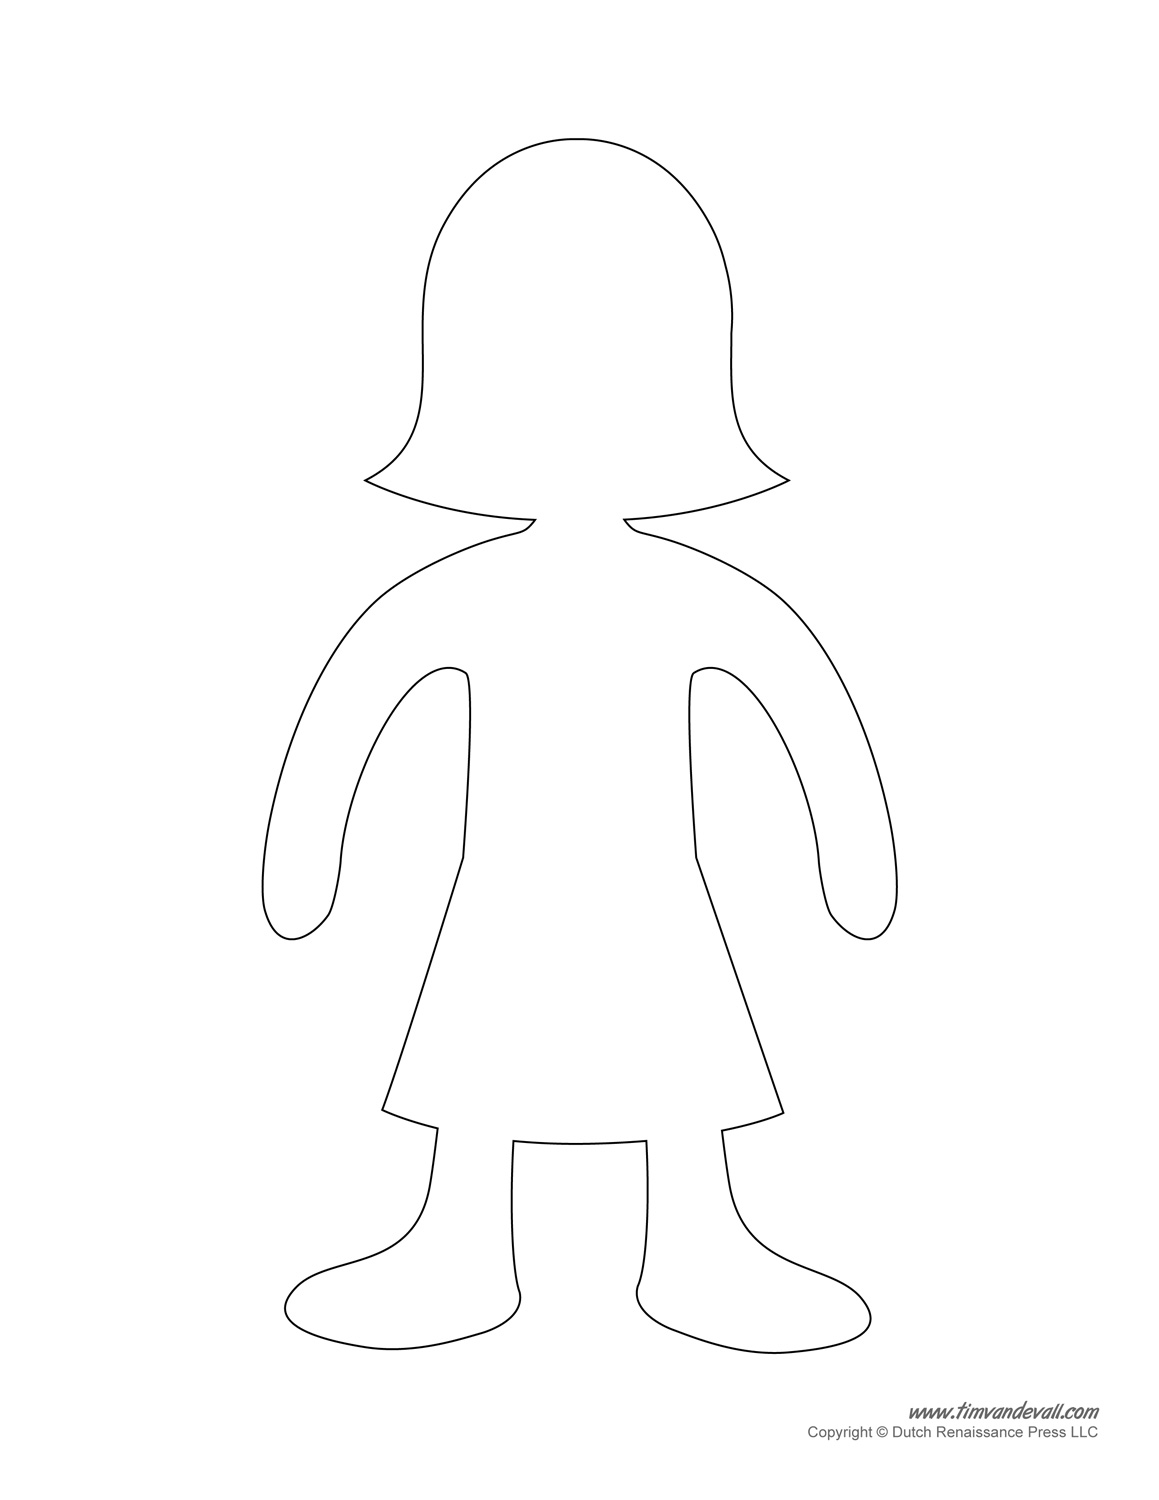 Printable Paper Doll Templates